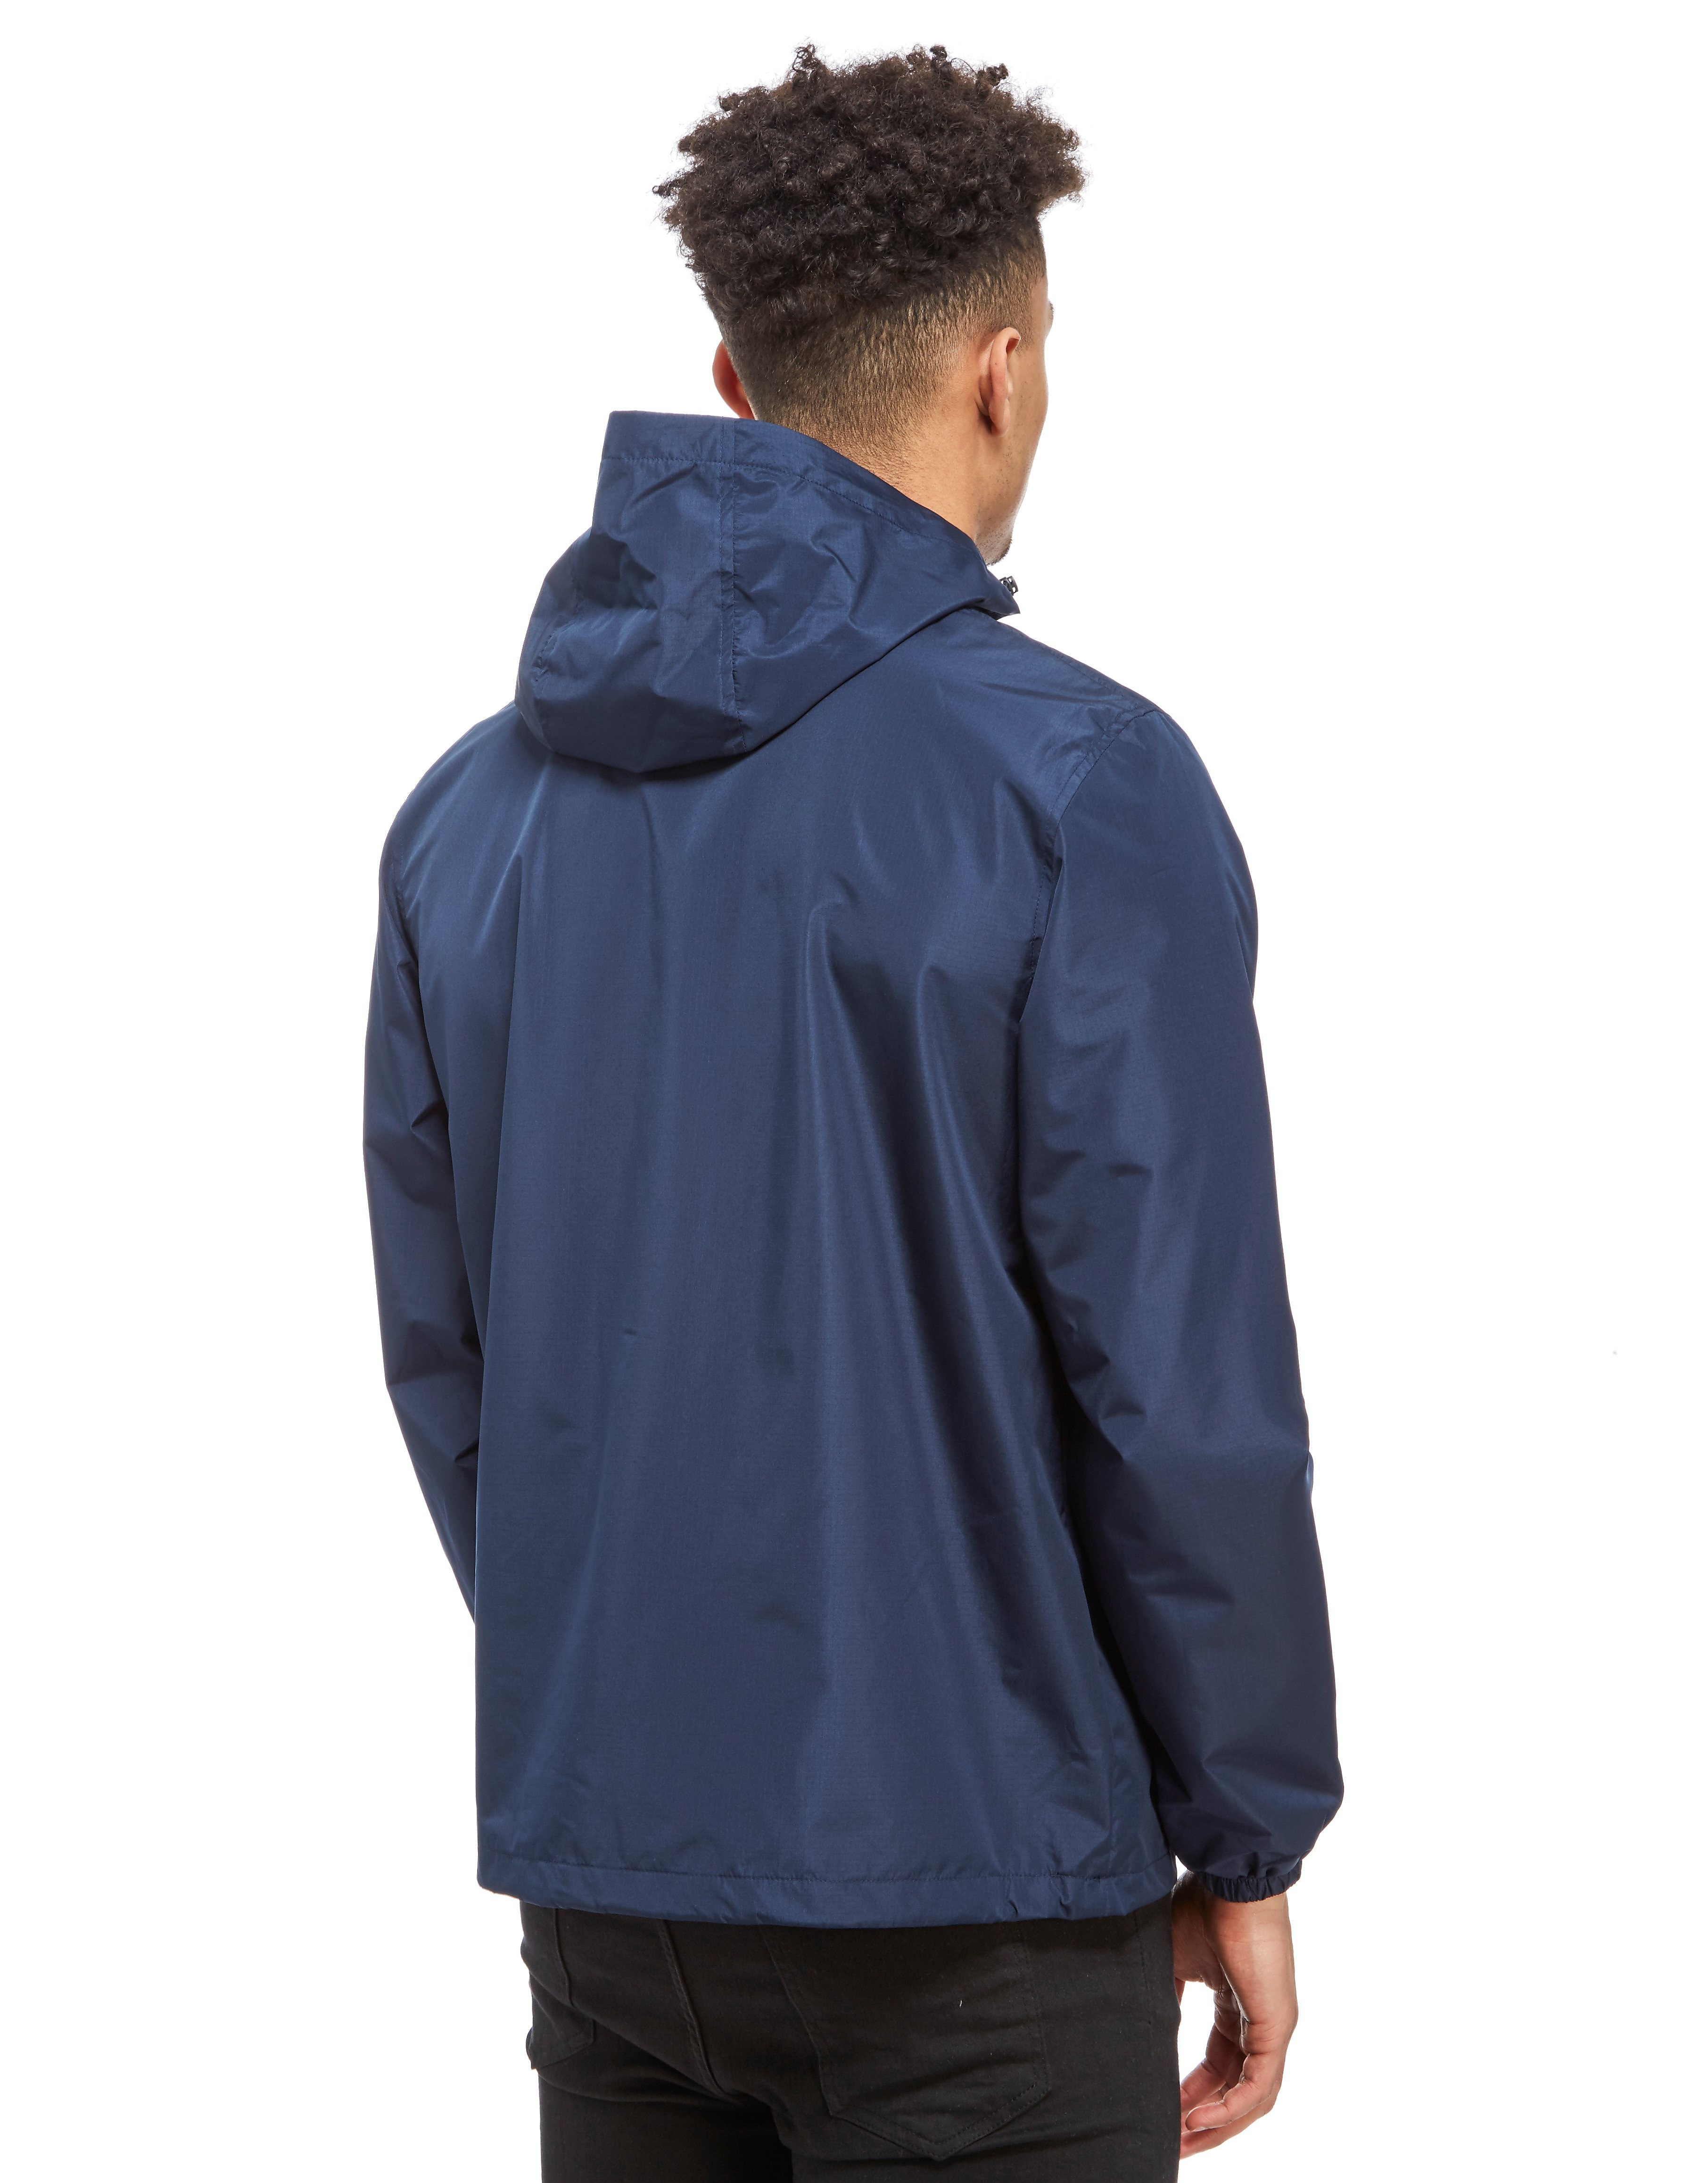 Franklin & Marshall Ripstop Jacket